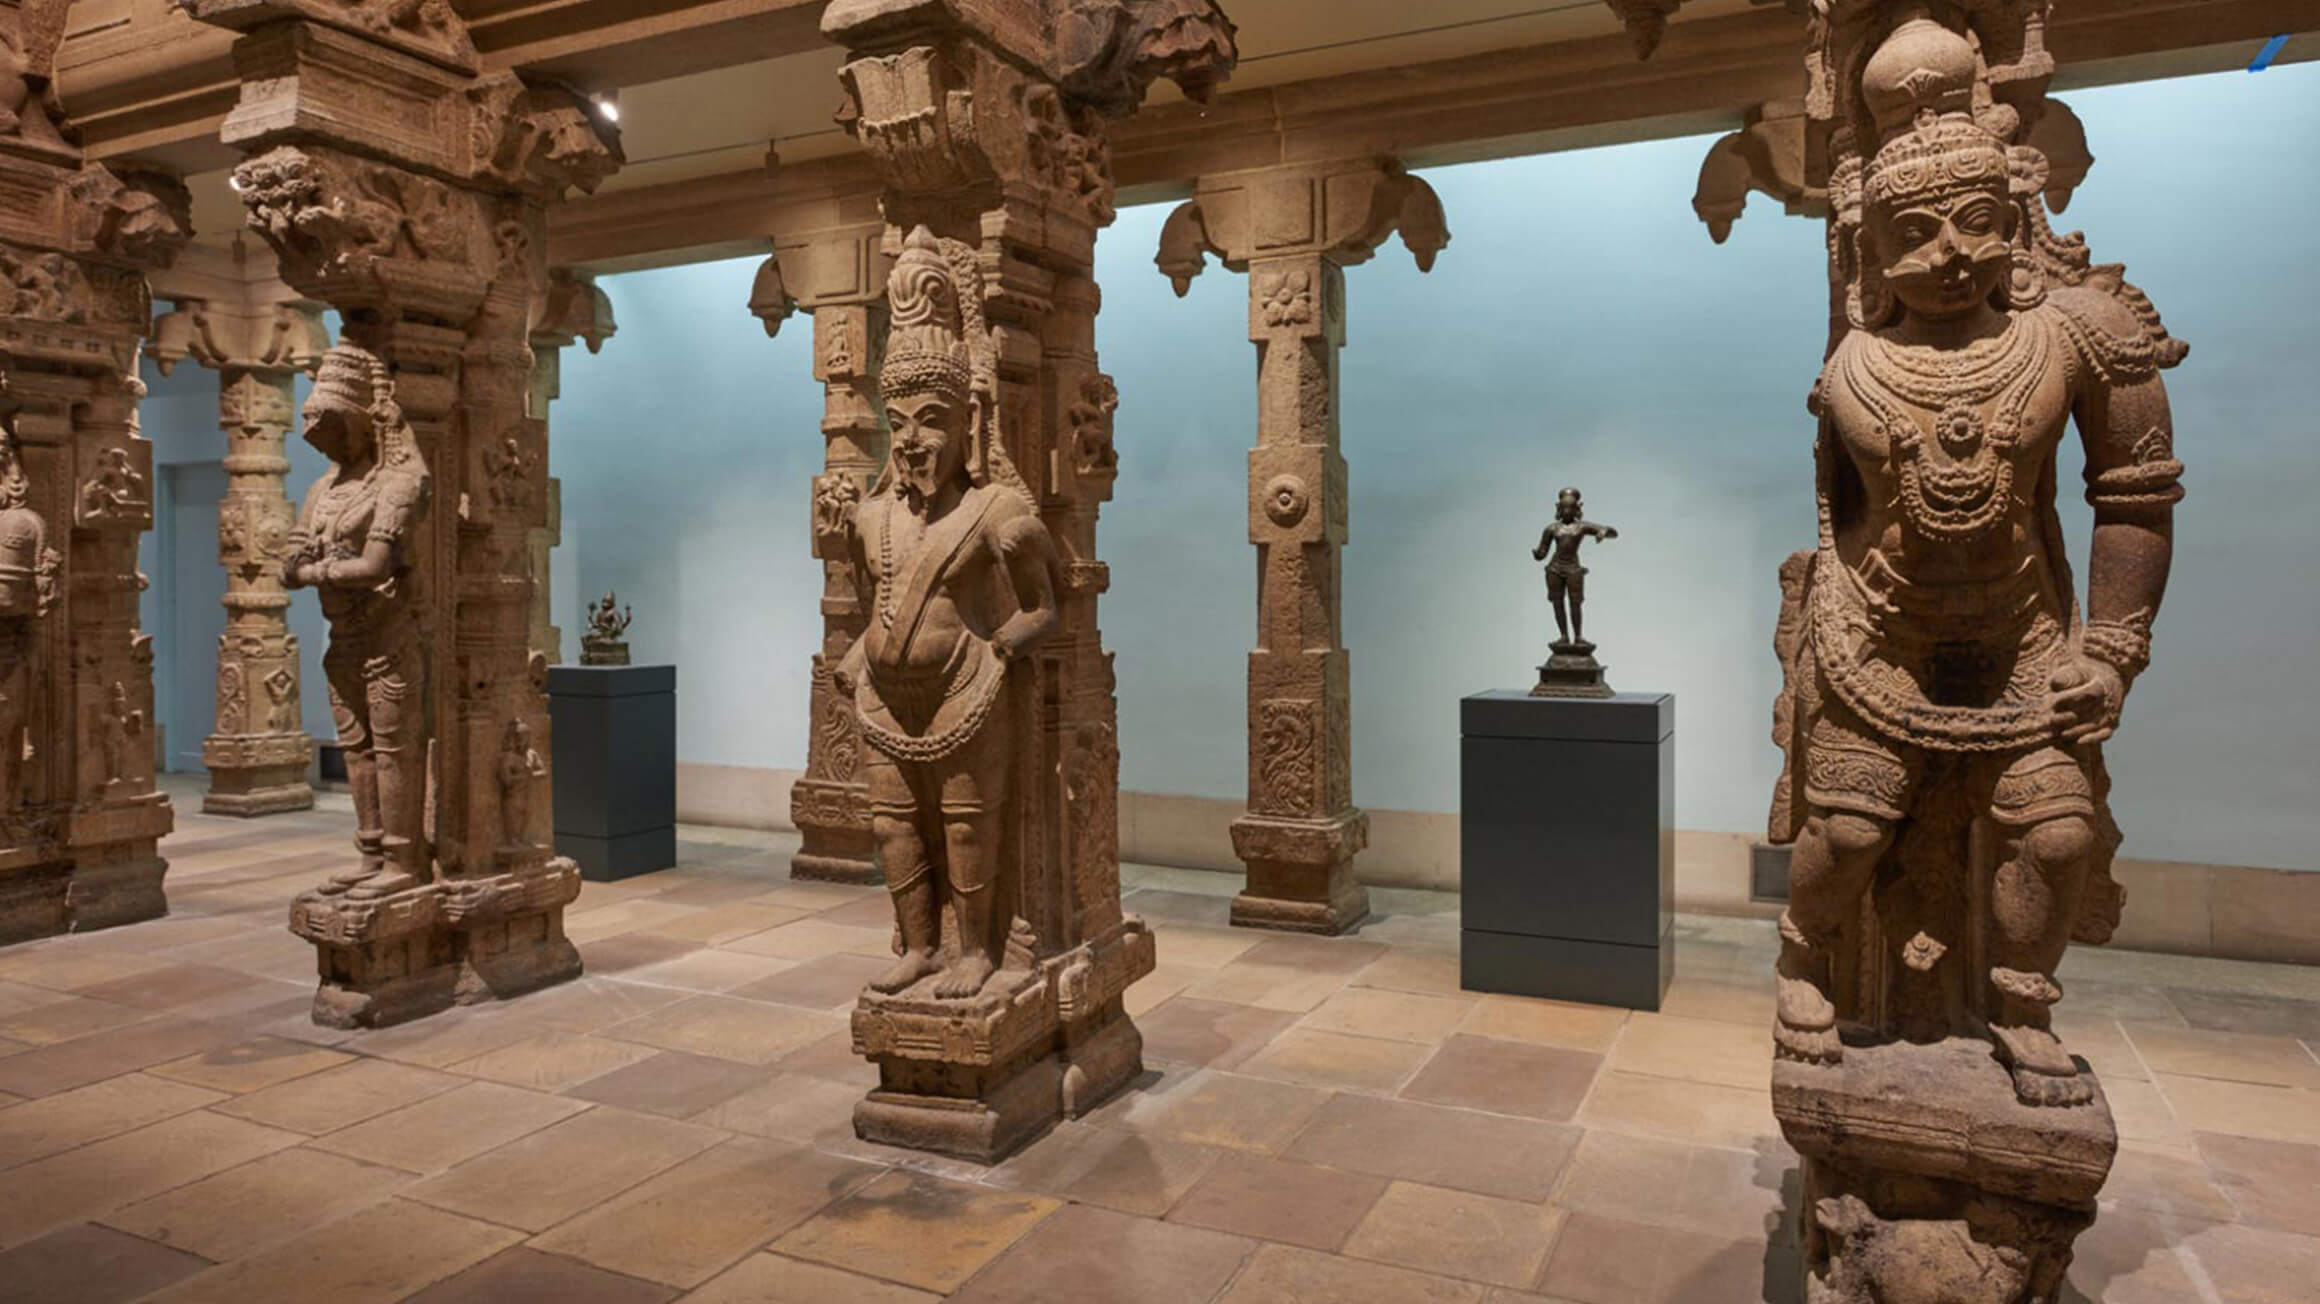 Pillared Temple Hall, 1560, made in India